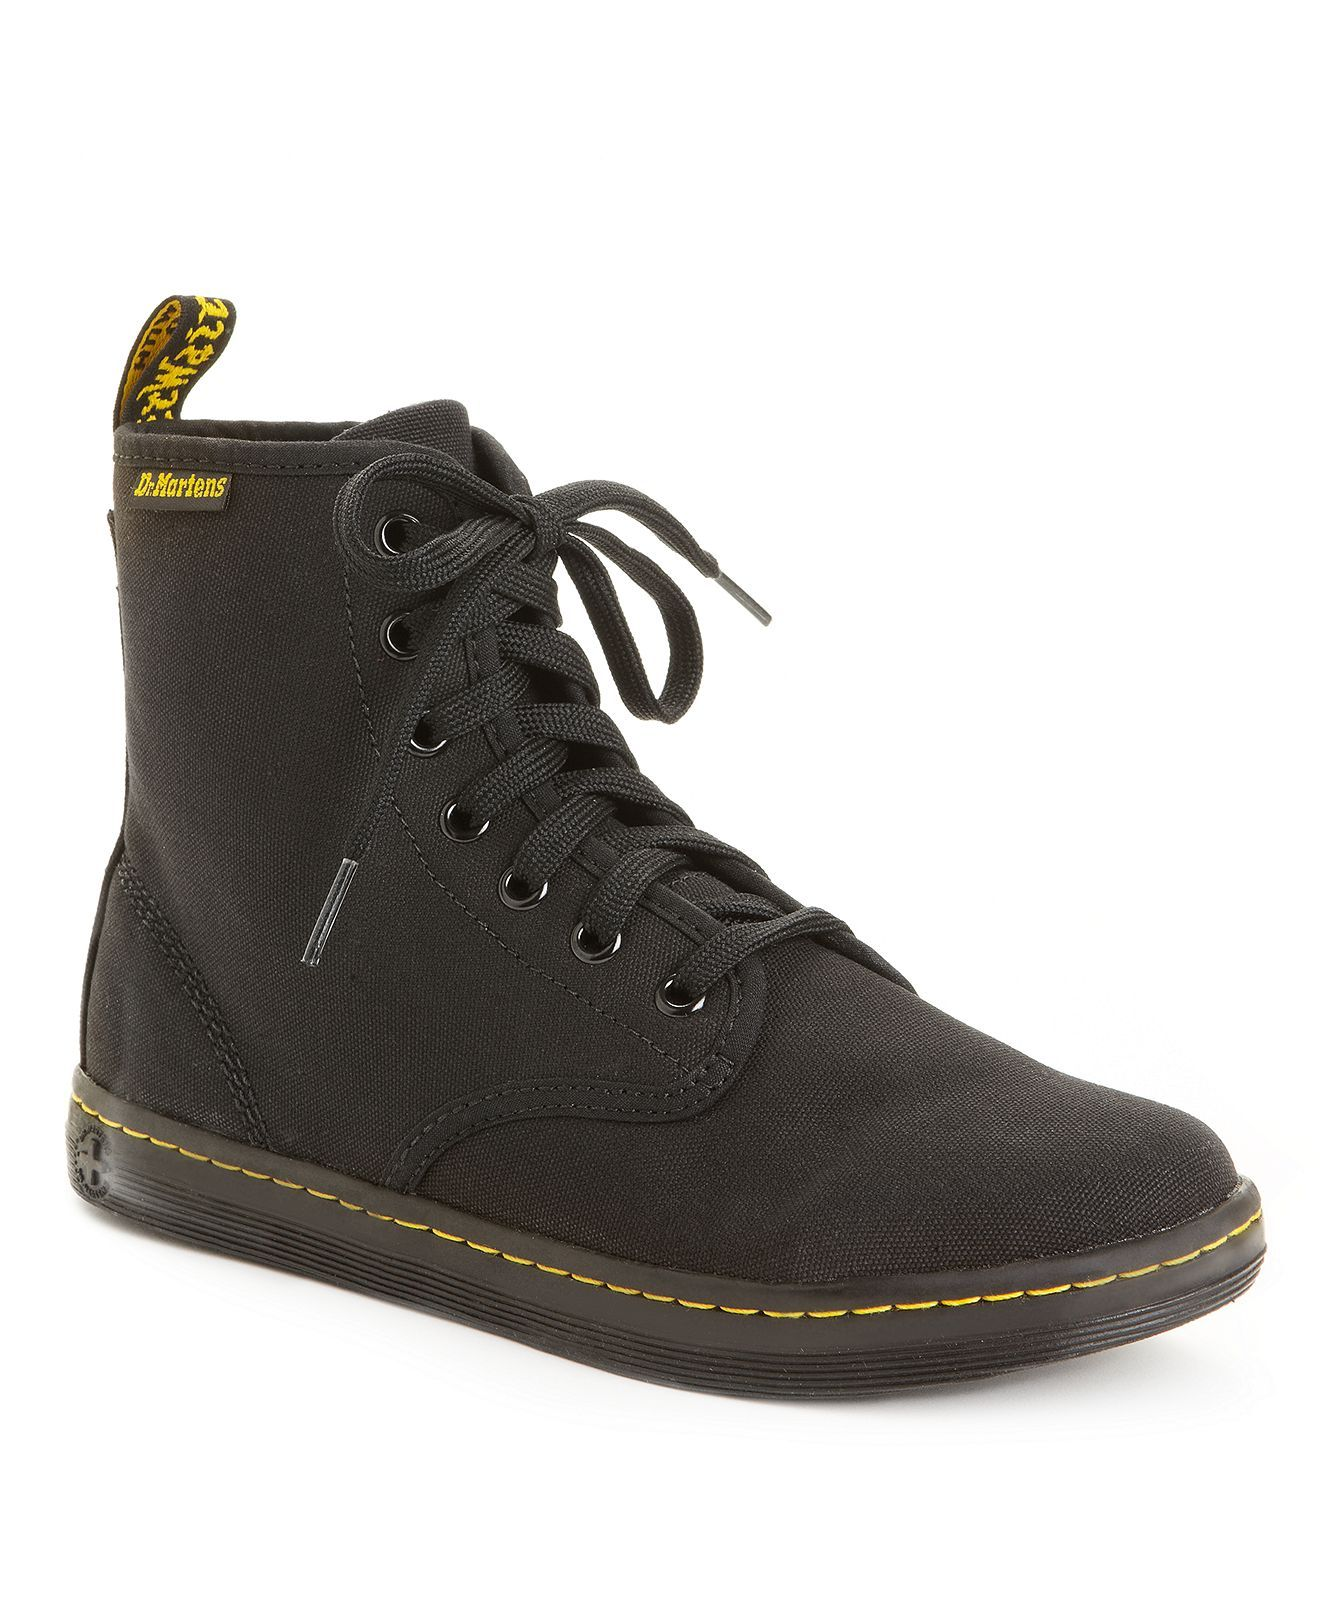 b0ce37a1e17ca Dr. Martens - Shoreditch High Top Sneakers | SHOOOOeezzz | Shoes ...